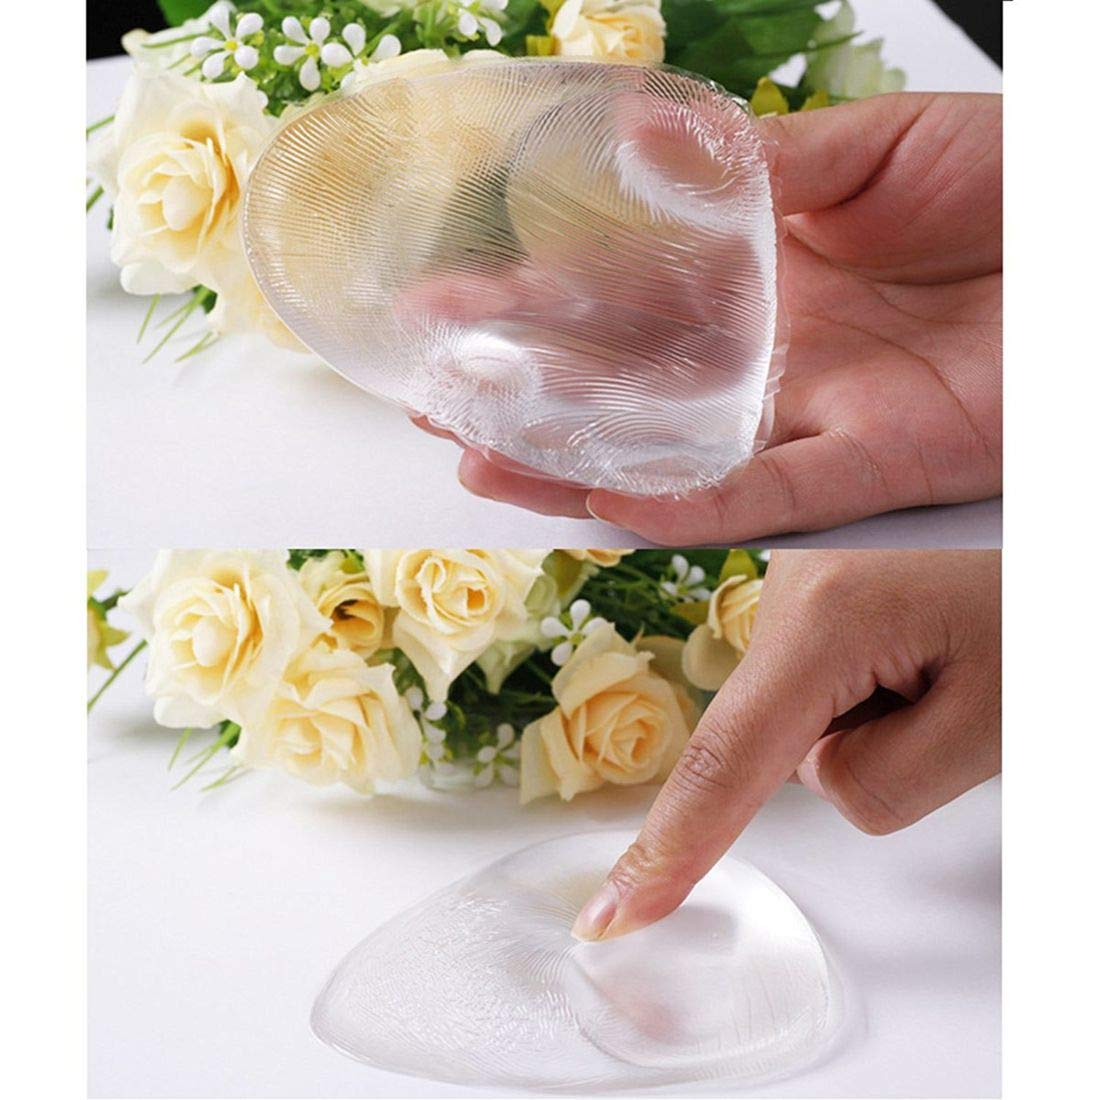 CRE-BILITY Clear Silicone Bra Inserts Gel Breast Inserts Enhancers Waterproof Push Up Pads Bra